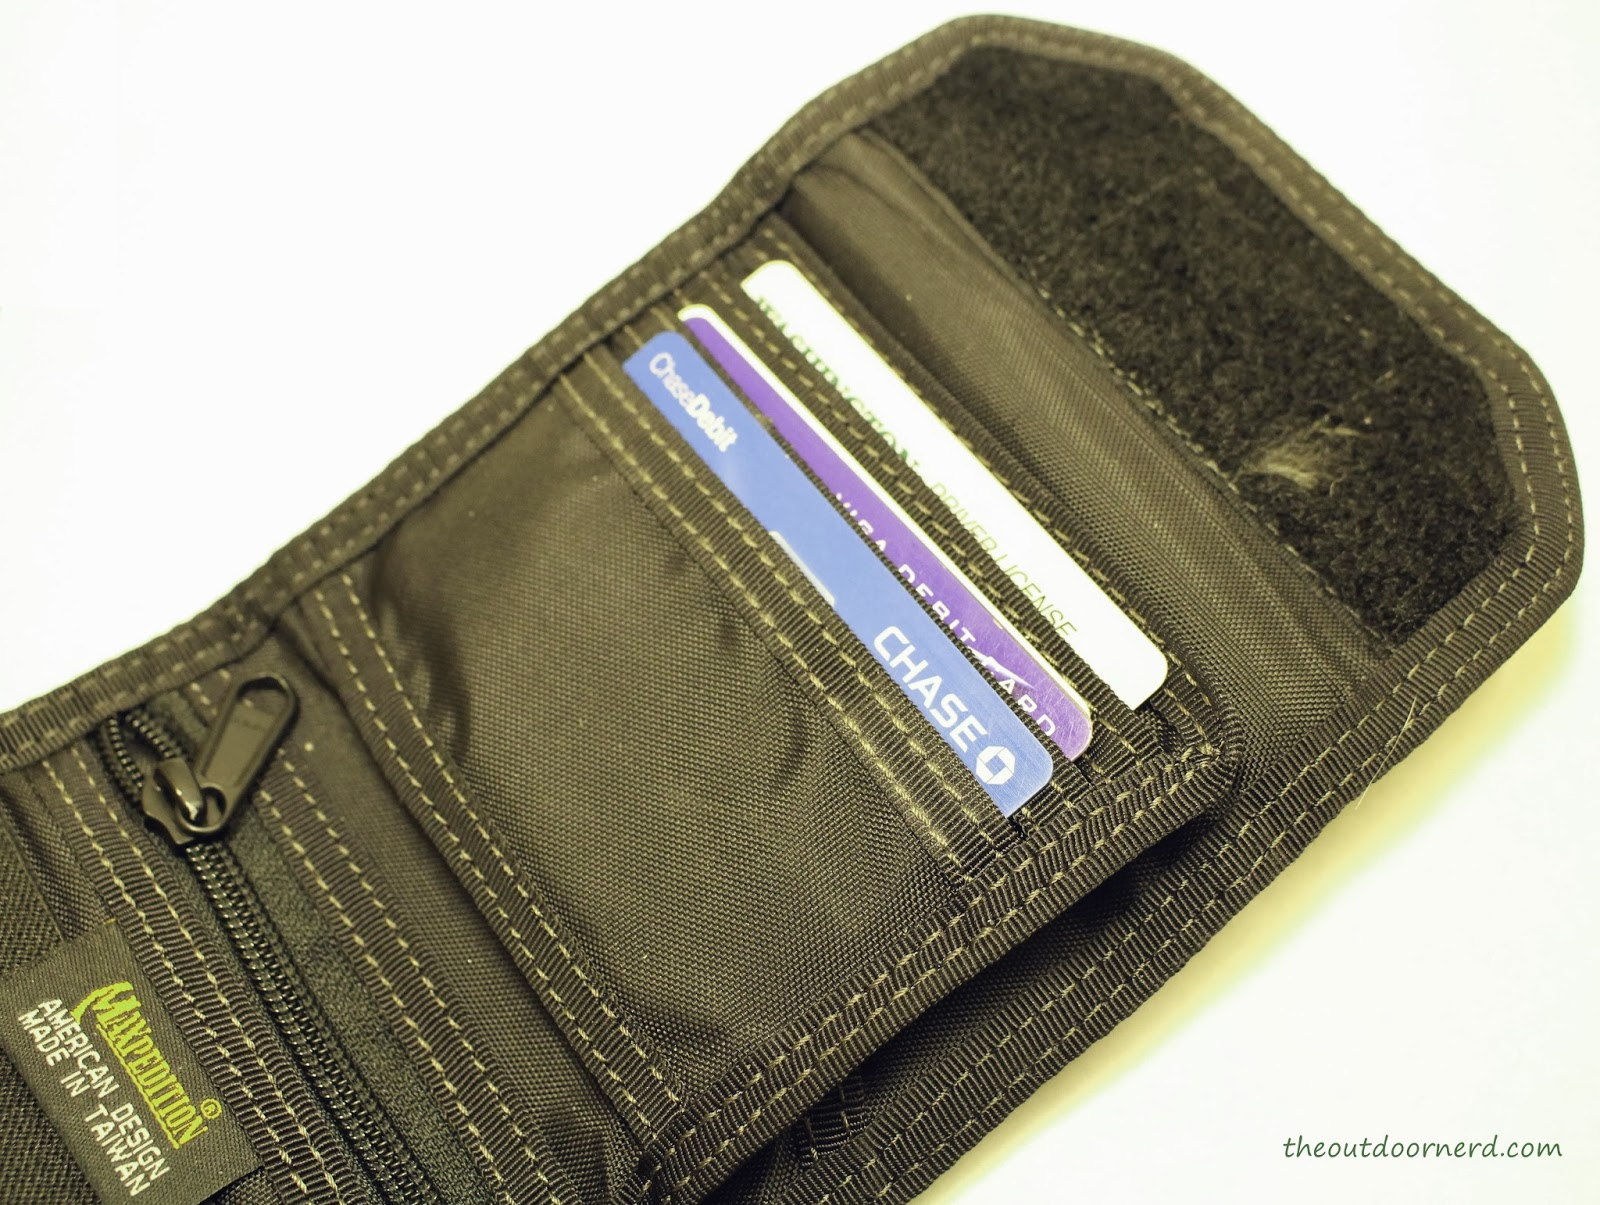 Maxpedition C.M.C Wallet - Closeup Of Card Slots 1